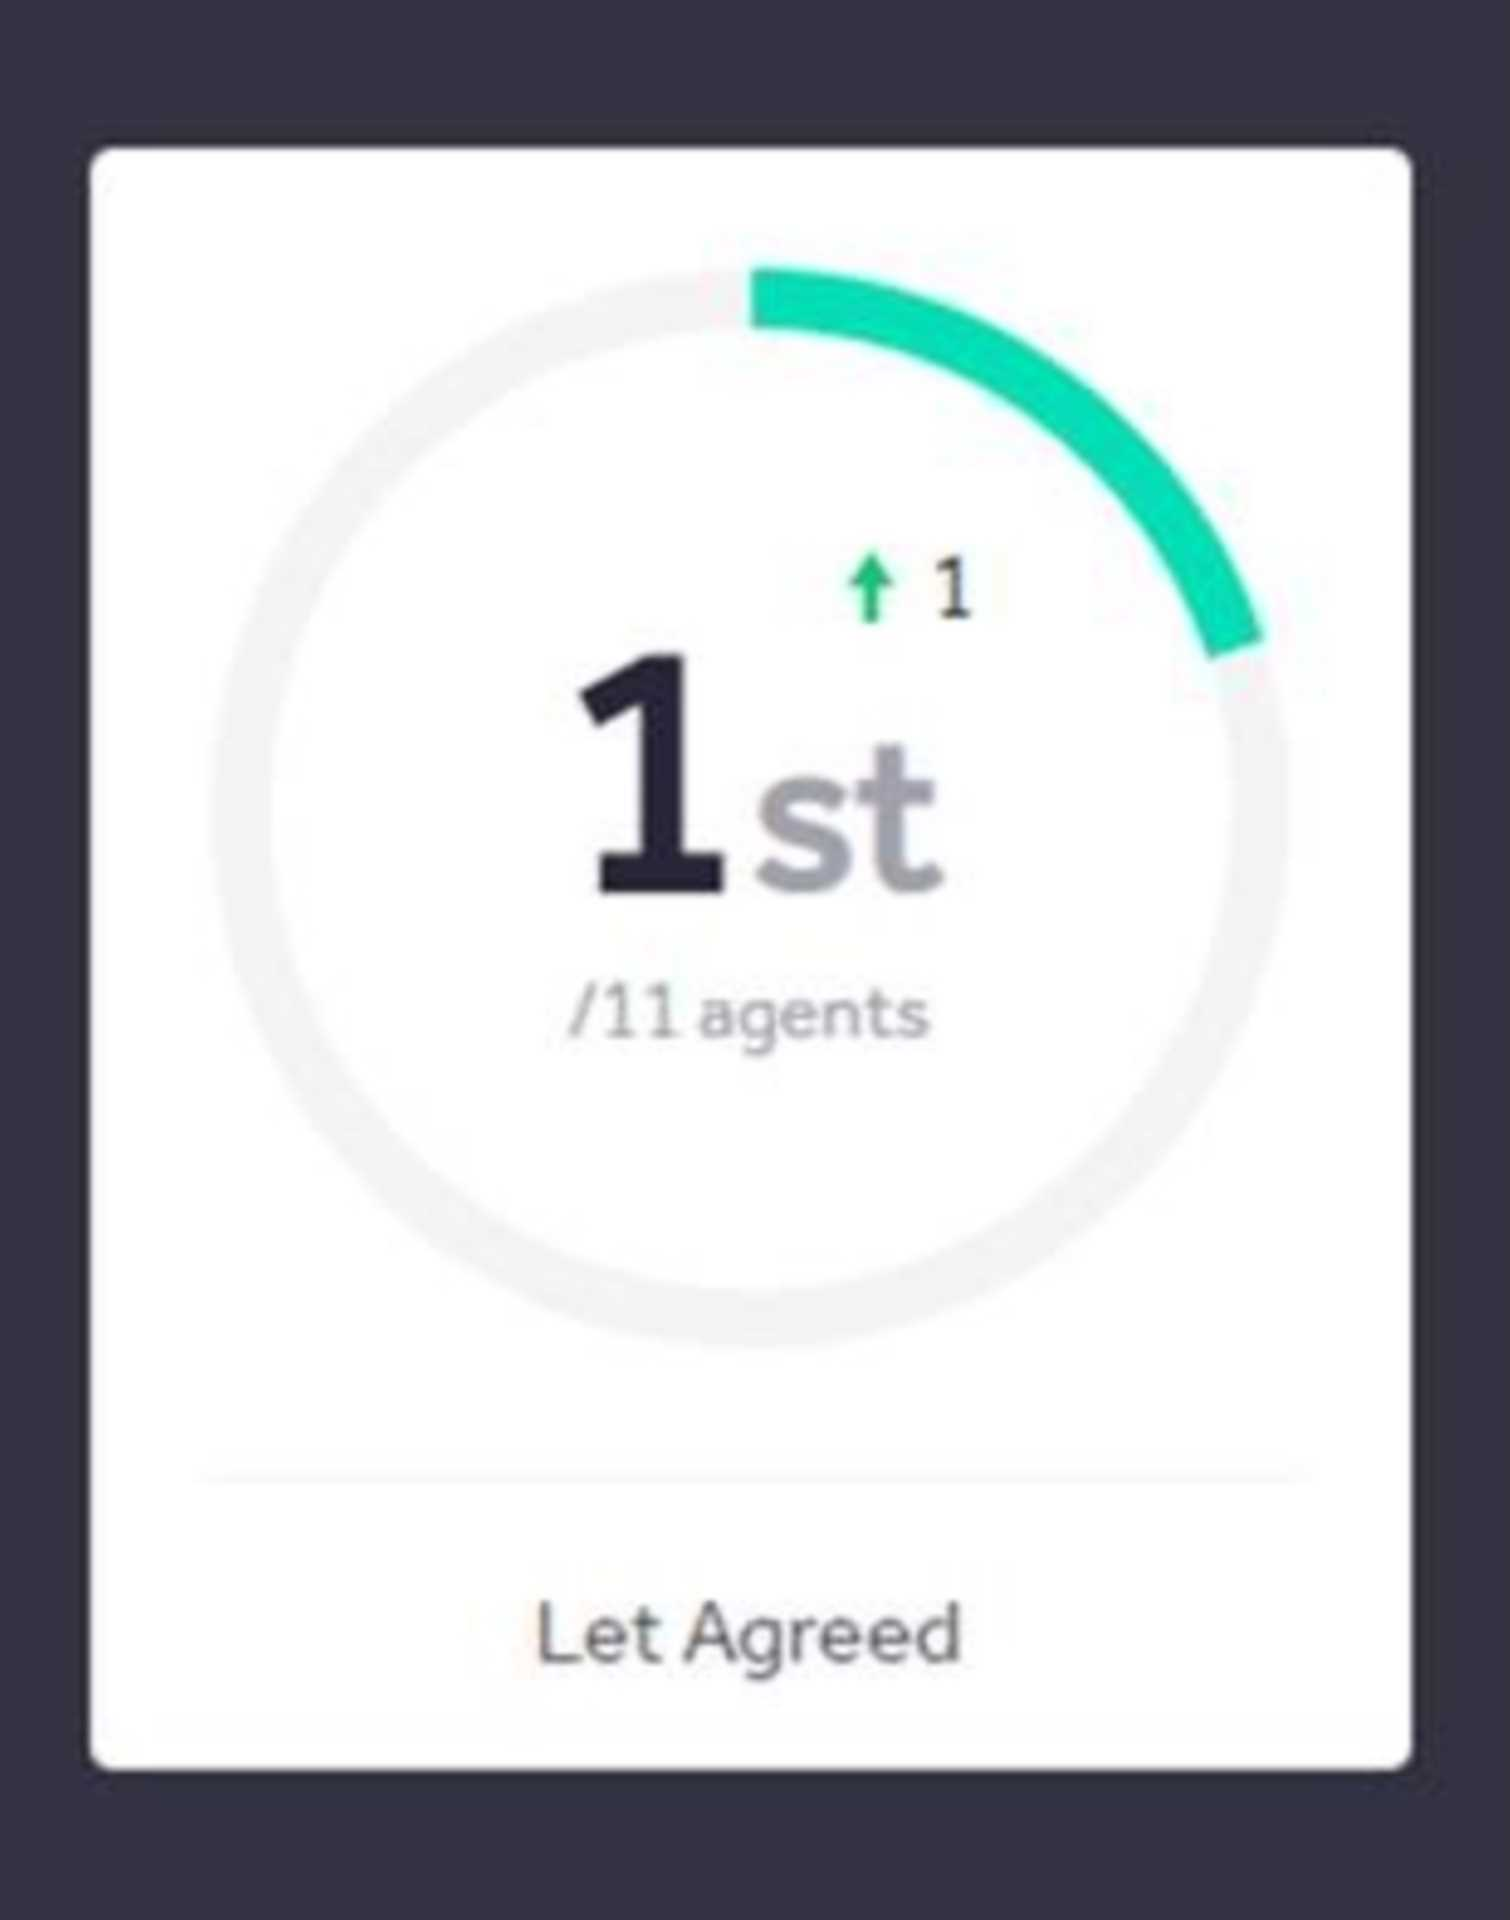 NUMBER 1 AGENT IN EPSOM FOR LETS AGREED!! 🎉🤩